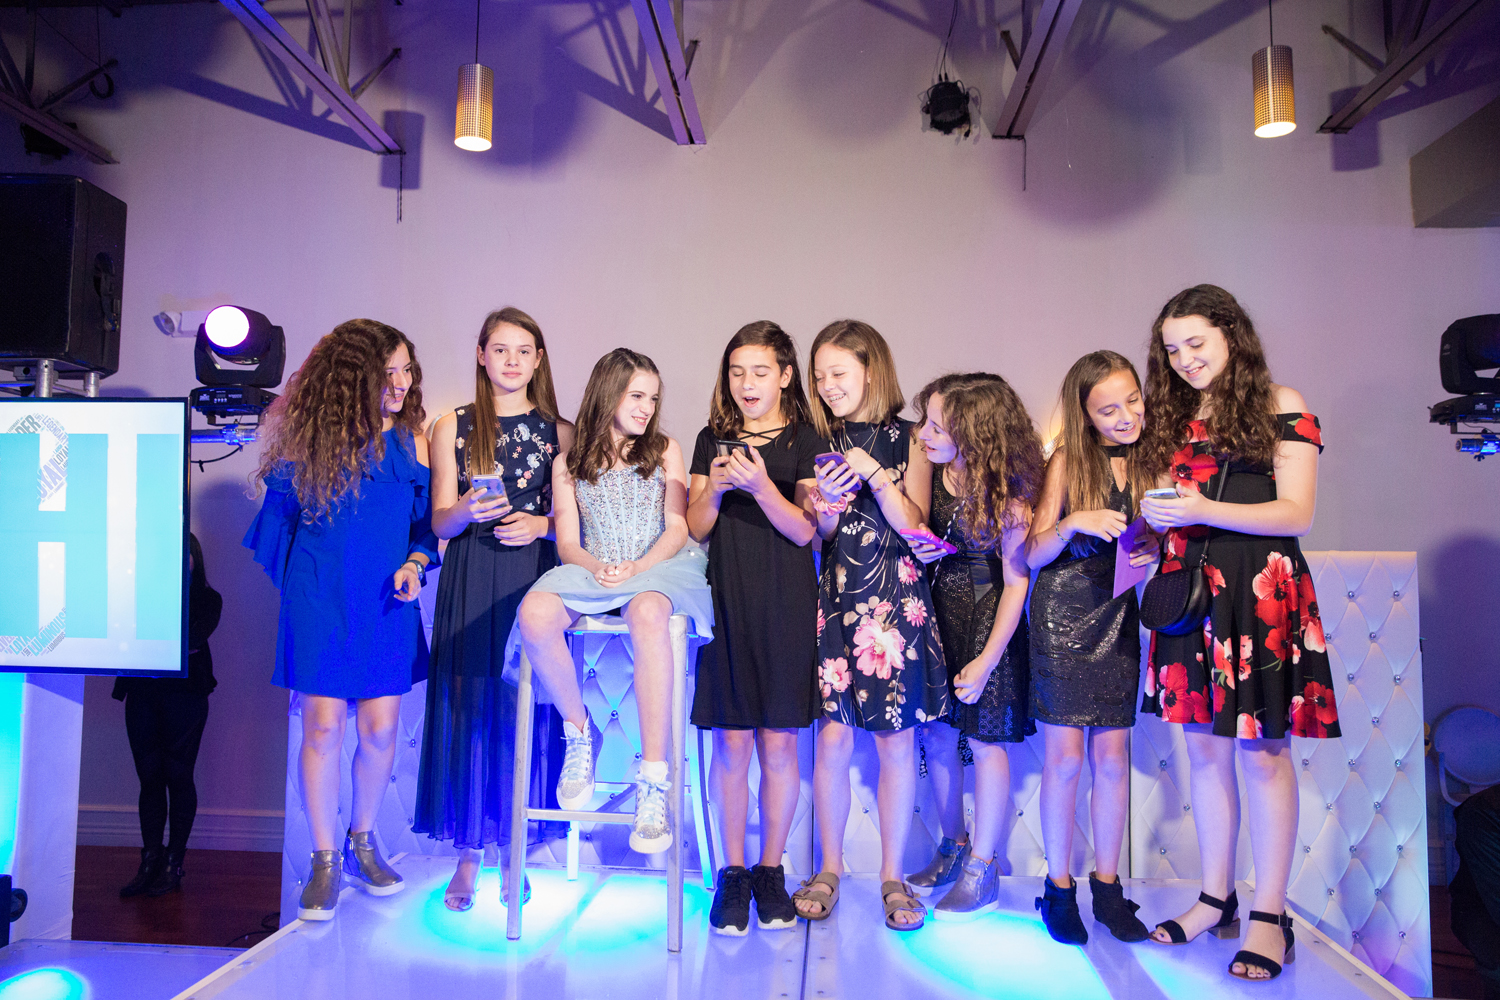 NJ_Bar_Mitzvah_Photo_21.jpg